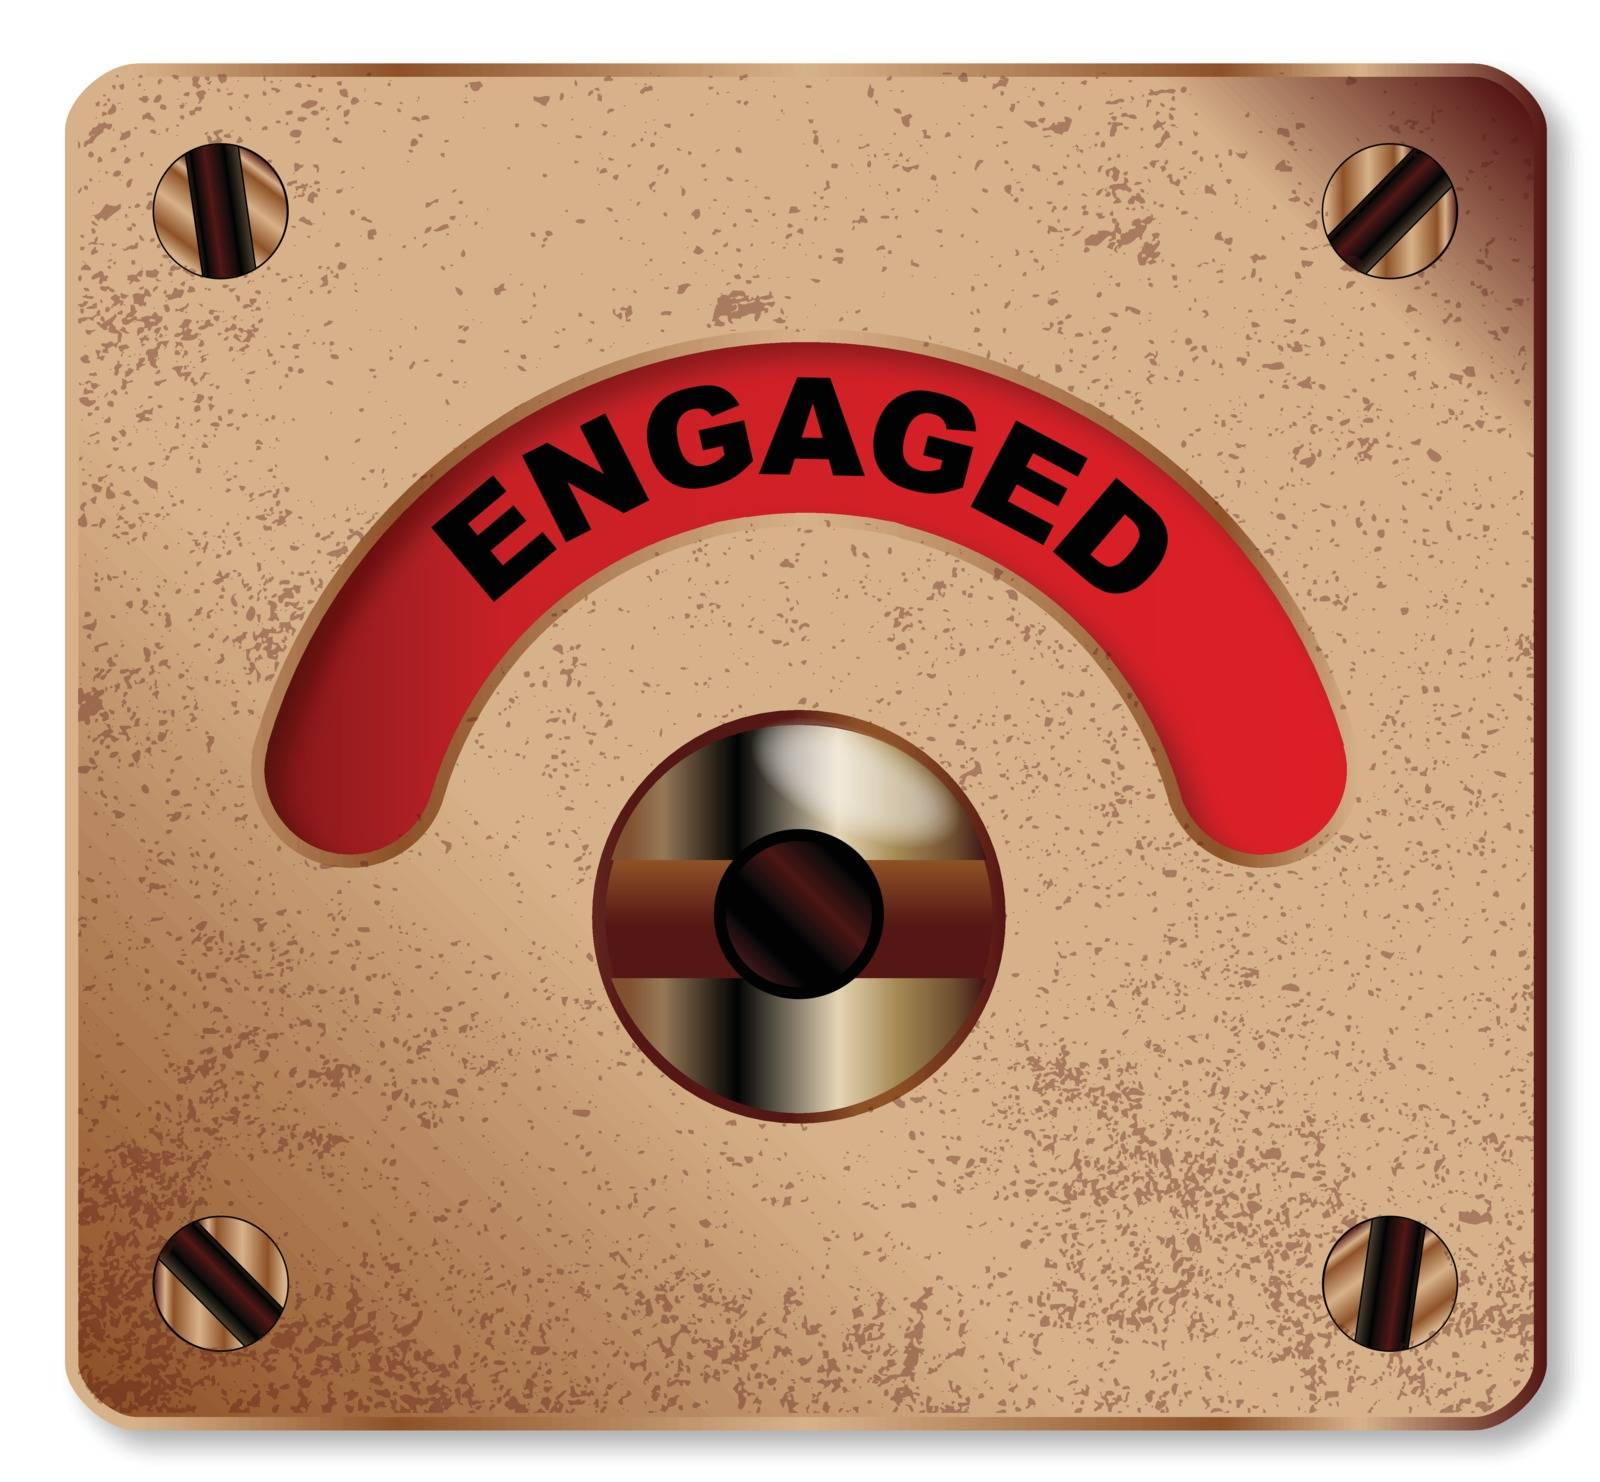 A typical loo engaged indicator over a white background